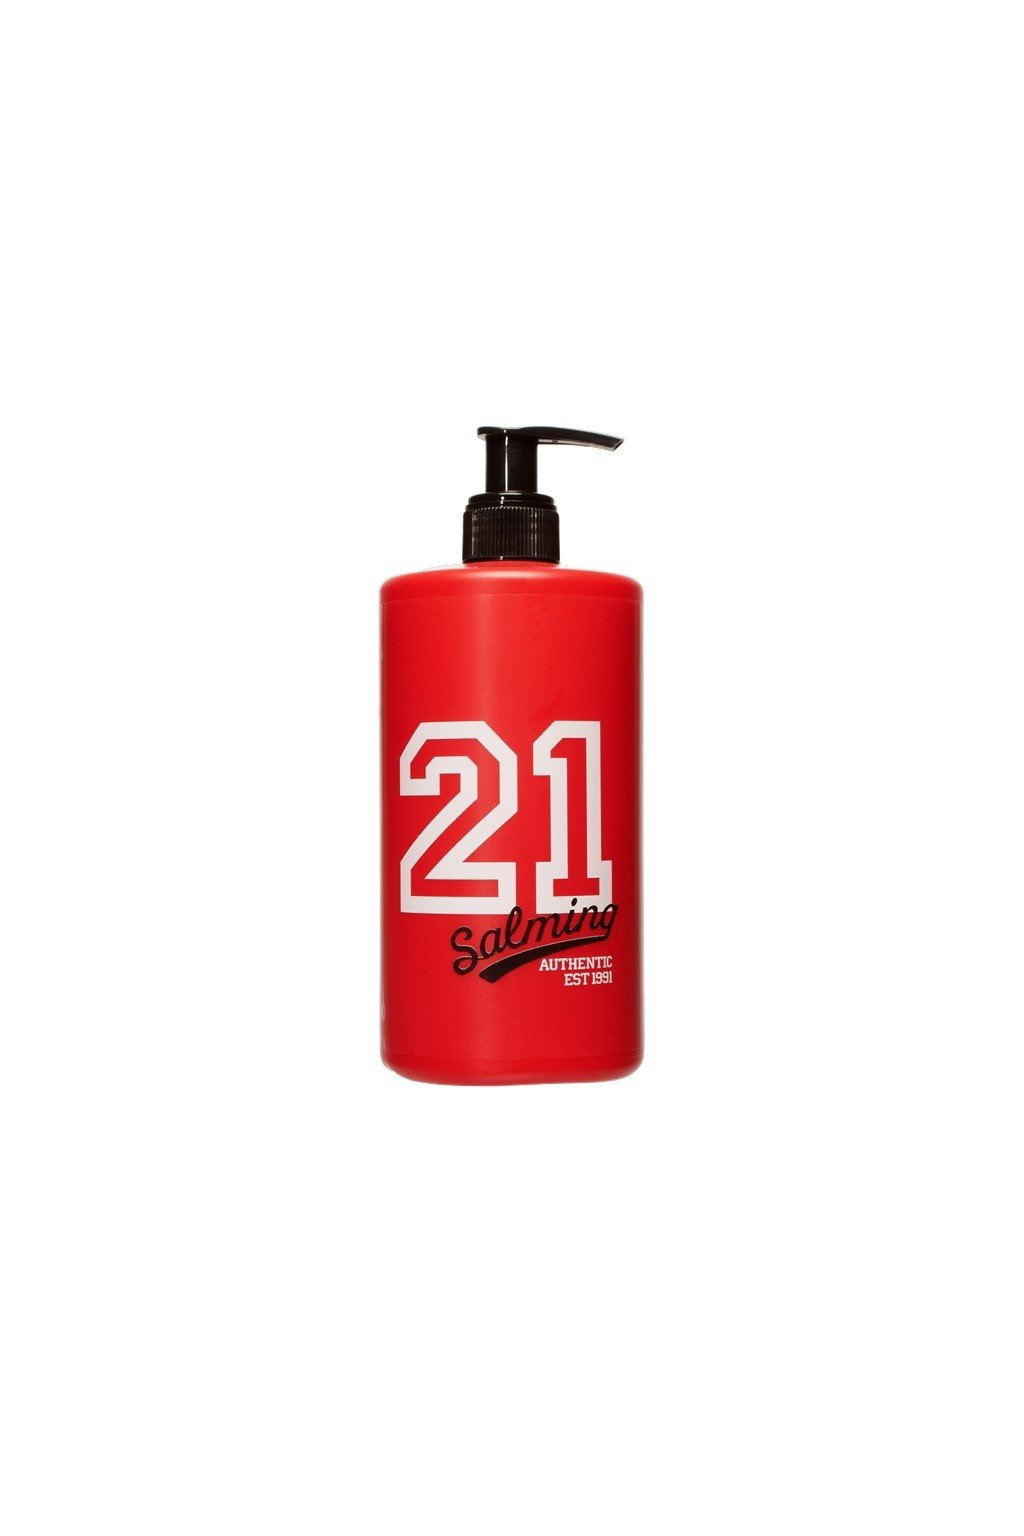 salming 21 hairbody shower gel red 500ml